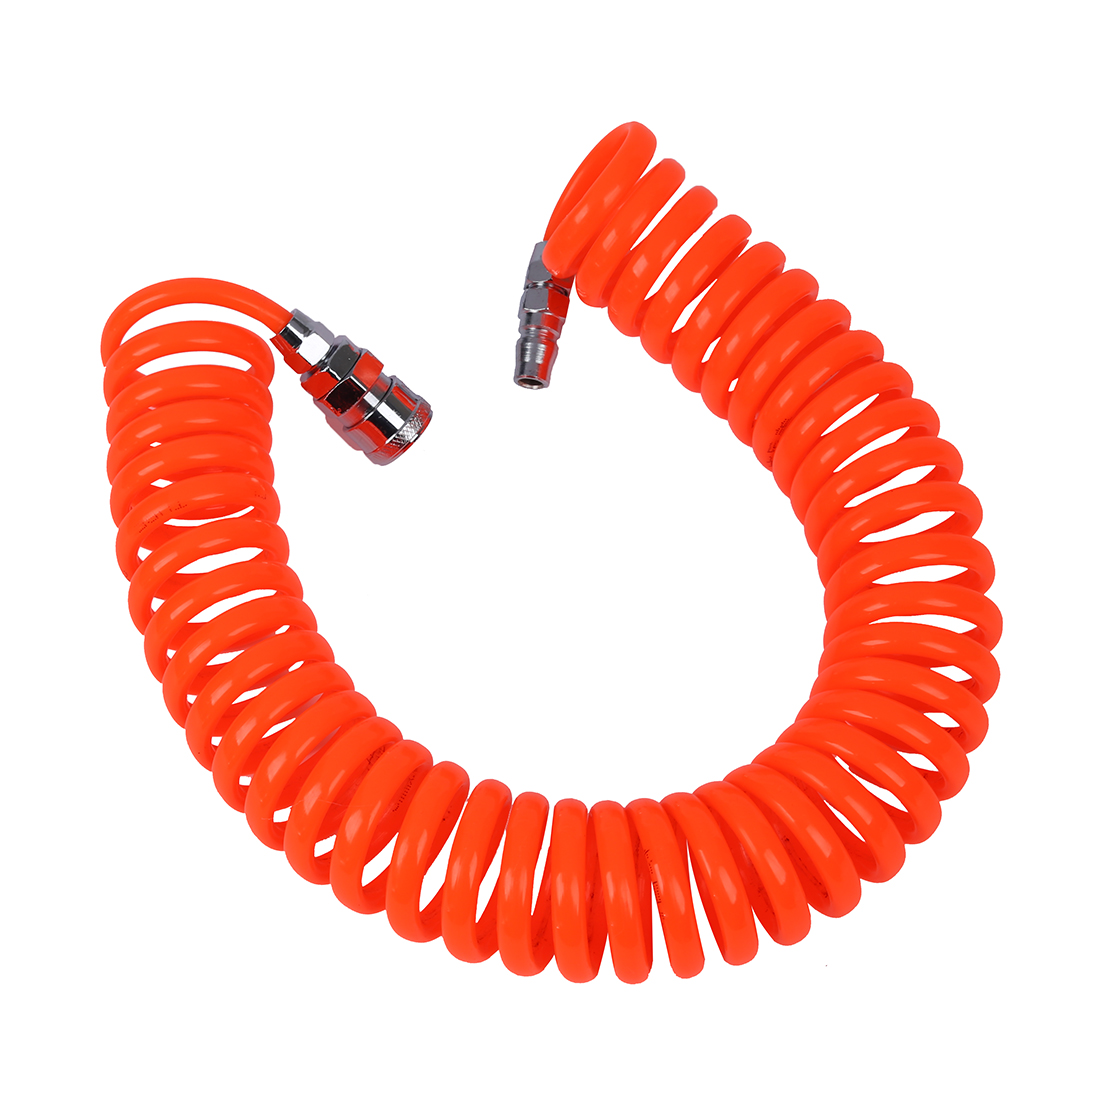 цена на CNIM Hot 6M 19.7Ft 8mm x 5mm Flexible PU Recoil Hose Tube for Compressor Air Tool